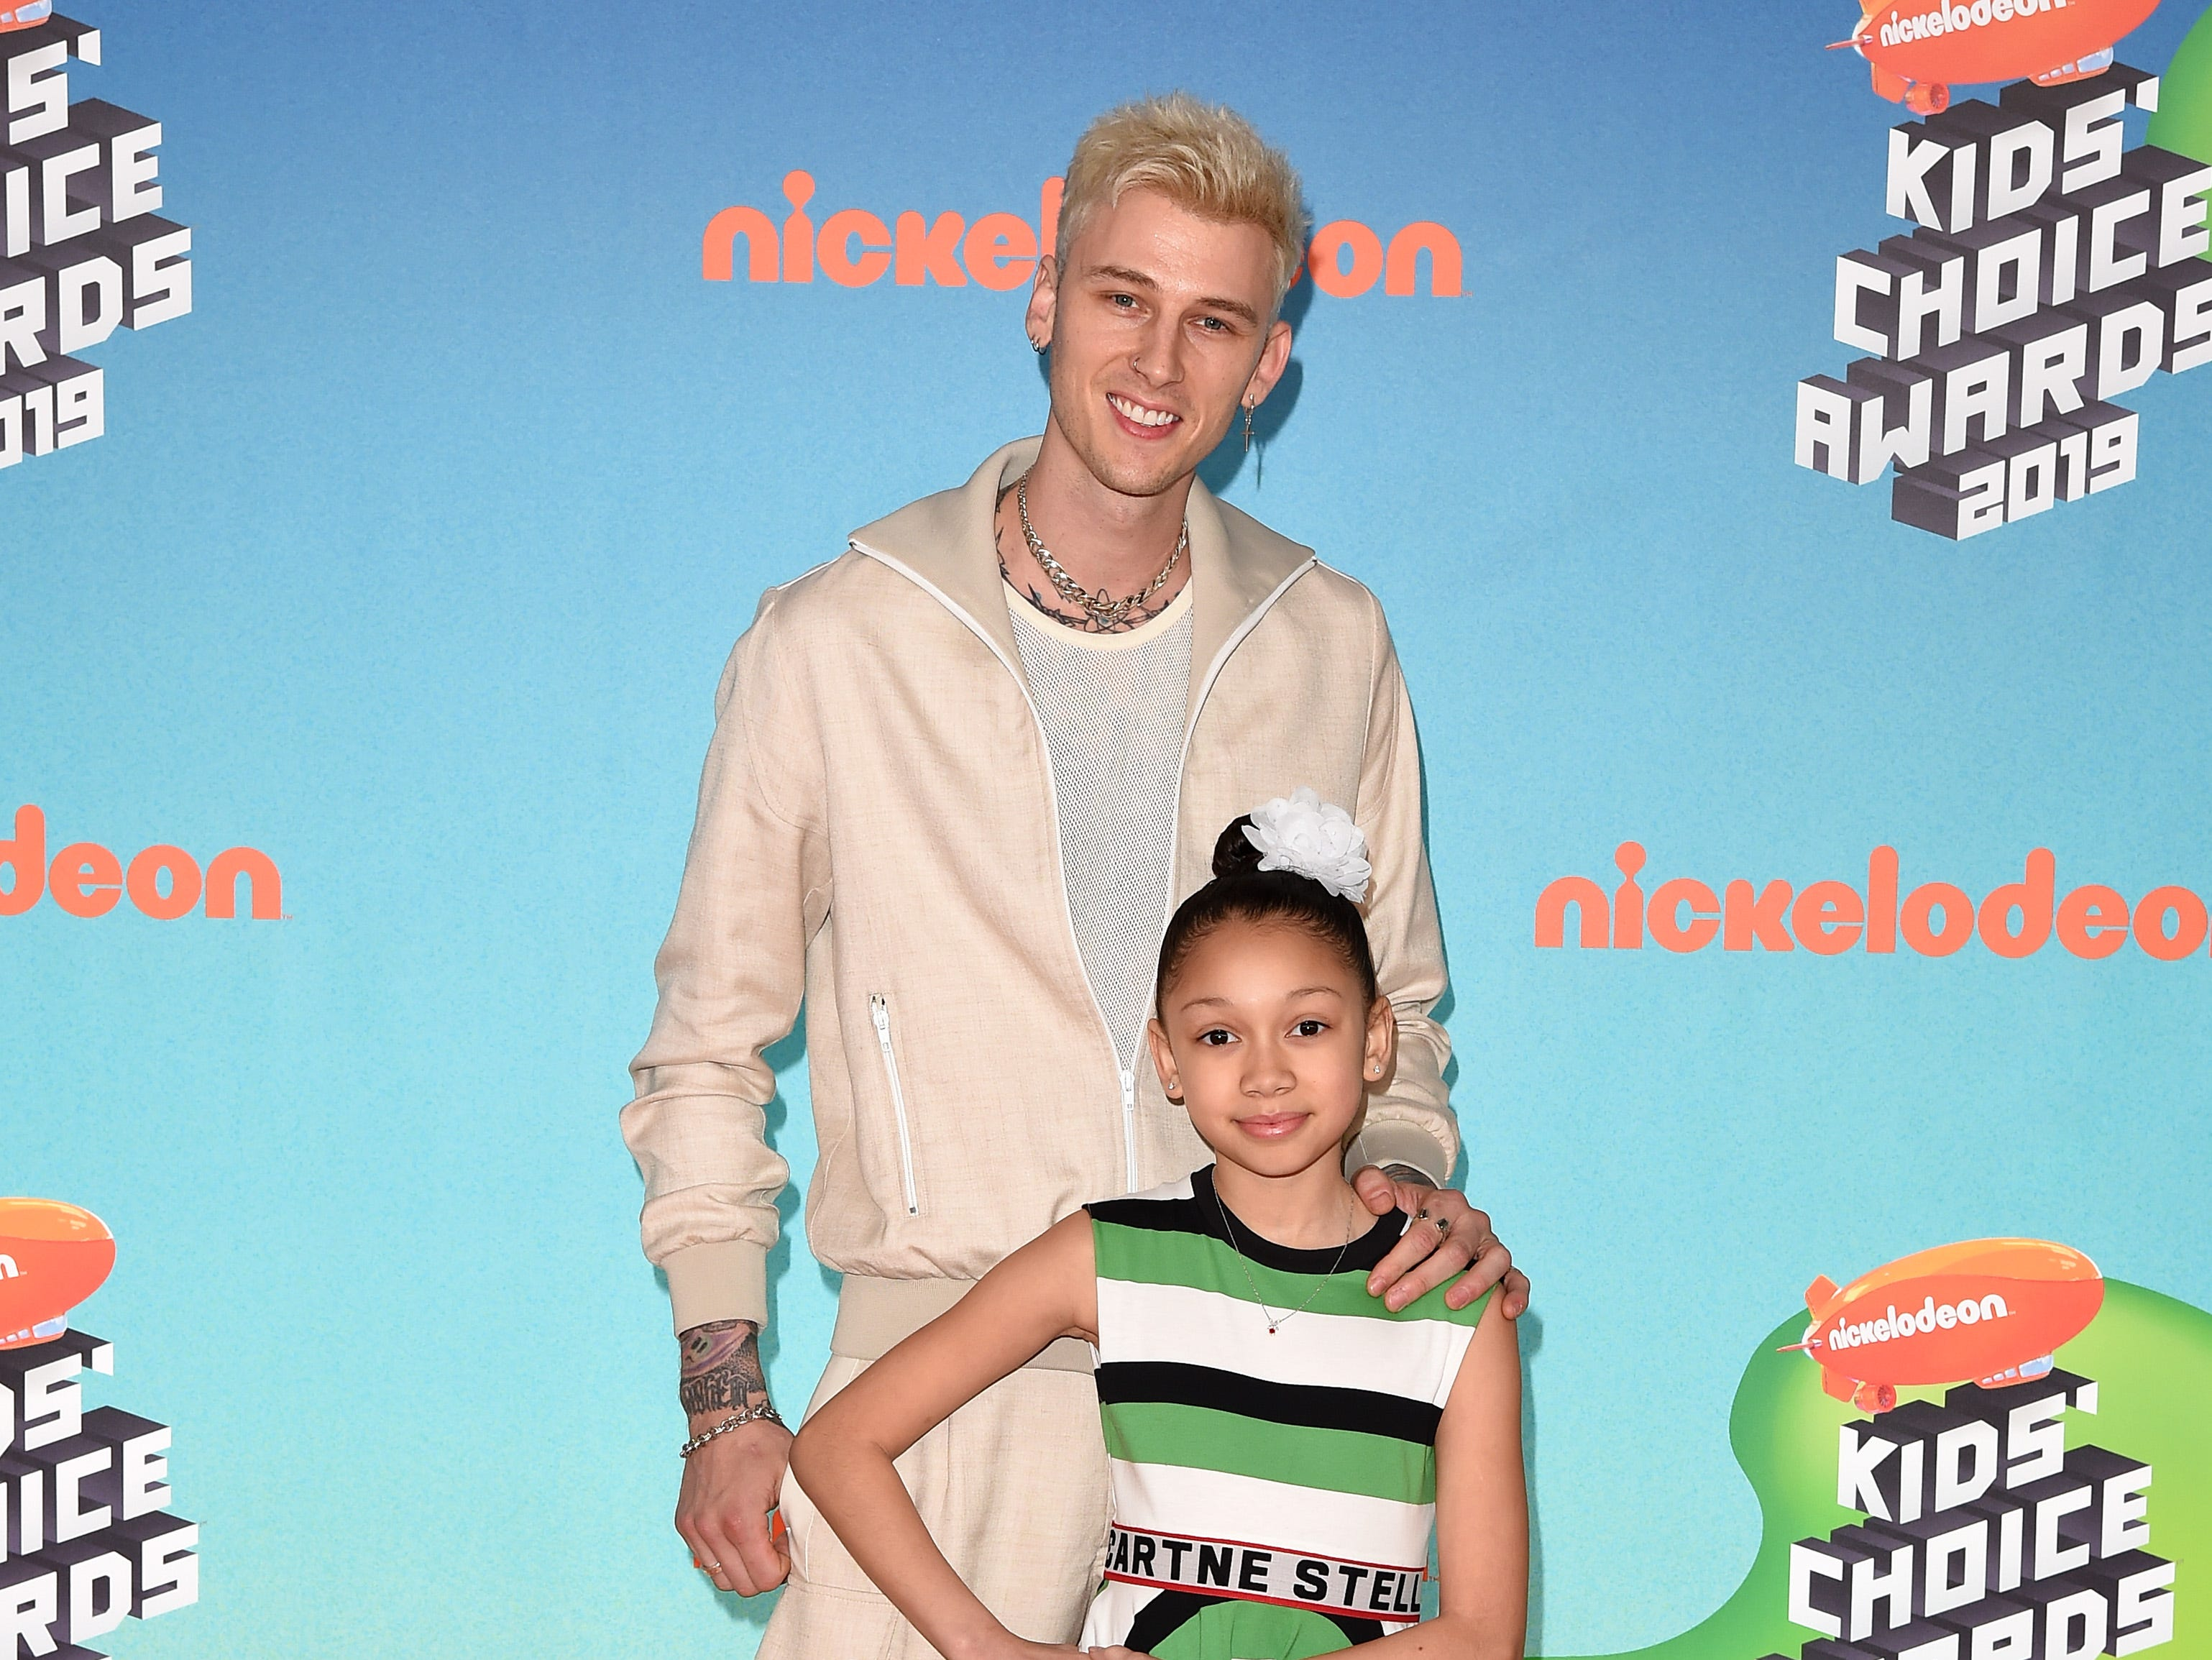 LOS ANGELES, CALIFORNIA - MARCH 23: Machine Gun Kelly and Casie Colson Baker attend Nickelodeon's 2019 Kids' Choice Awards at Galen Center on March 23, 2019 in Los Angeles, California. (Photo by Axelle/Bauer-Griffin/FilmMagic) ORG XMIT: 775314636 ORIG FILE ID: 1137875607